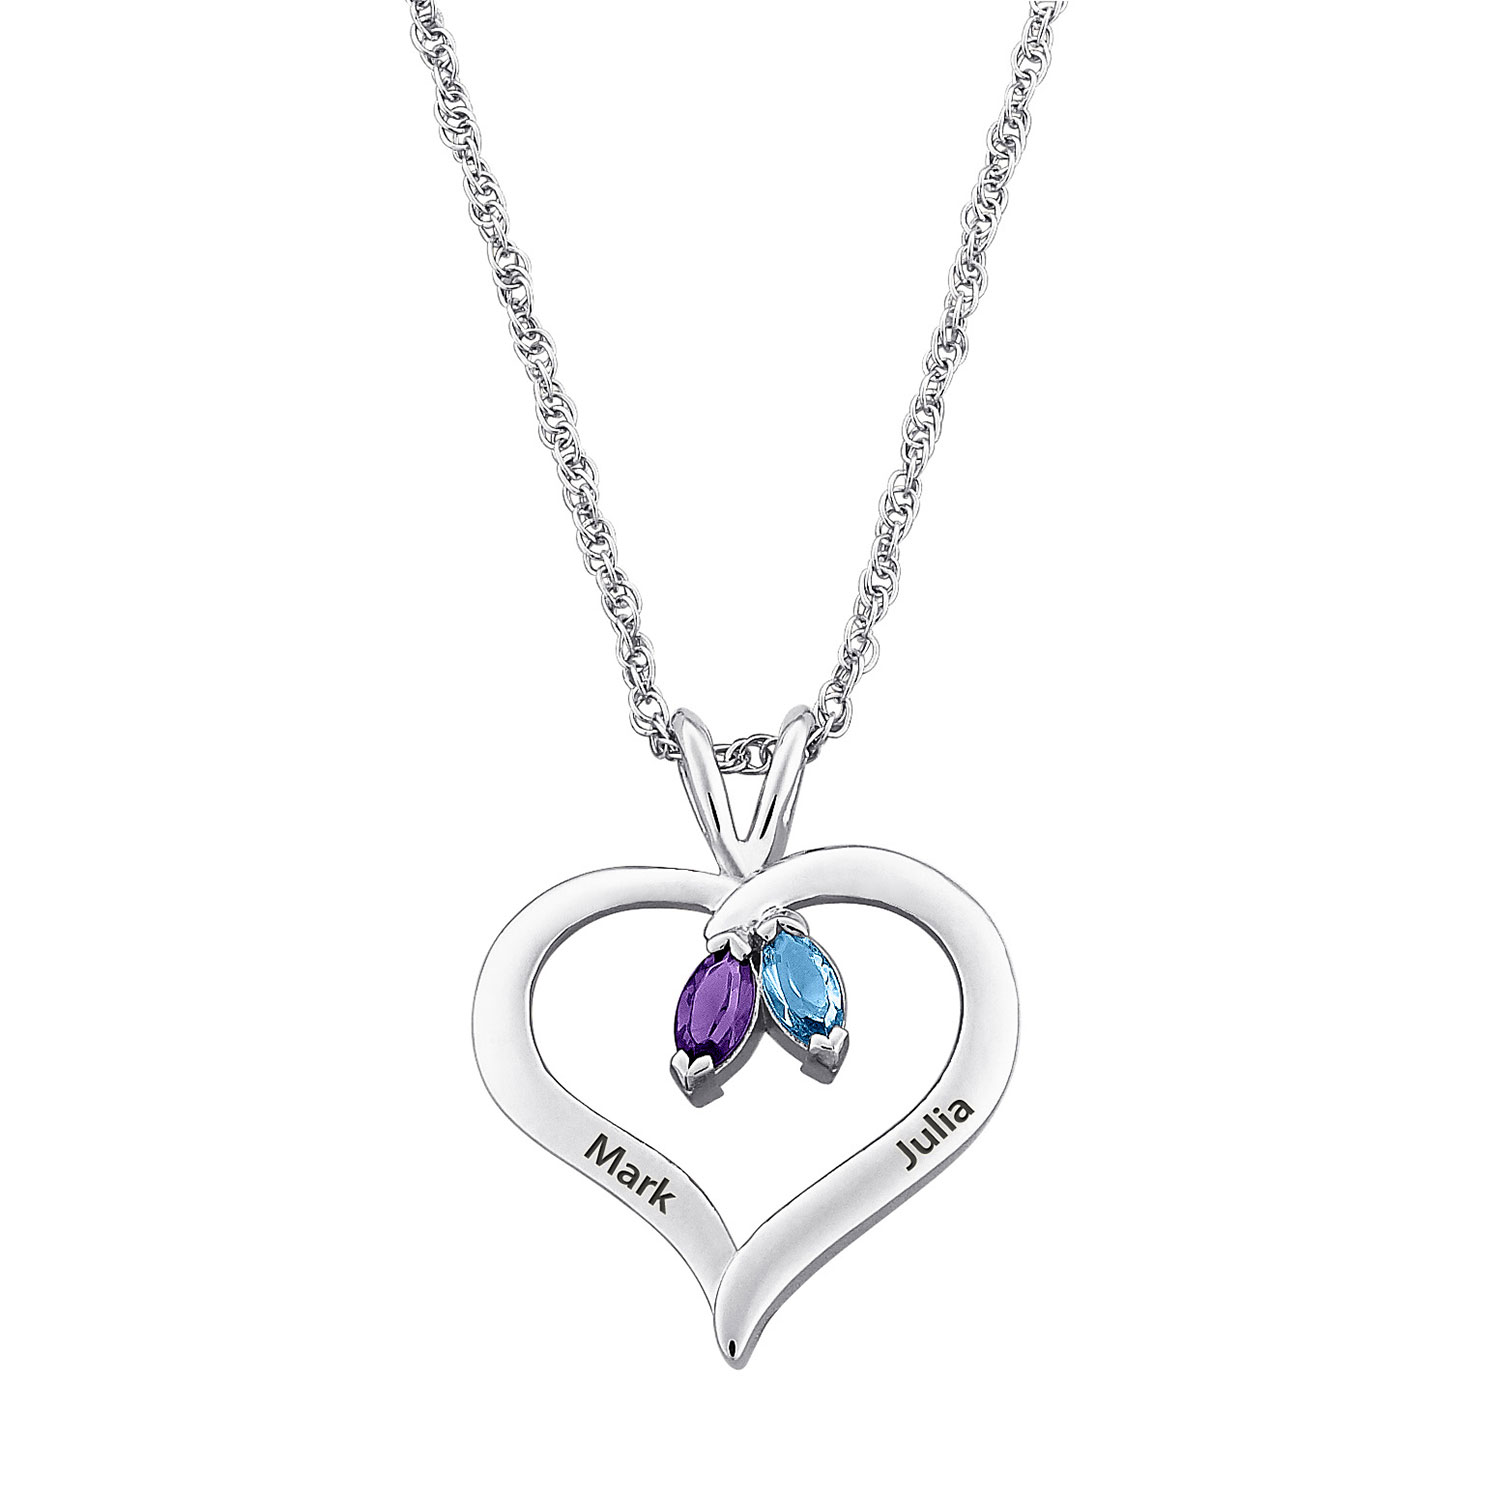 1500x1500 Sterling Silver Couple's Name Amp Marquise Birthstone Heart Necklace